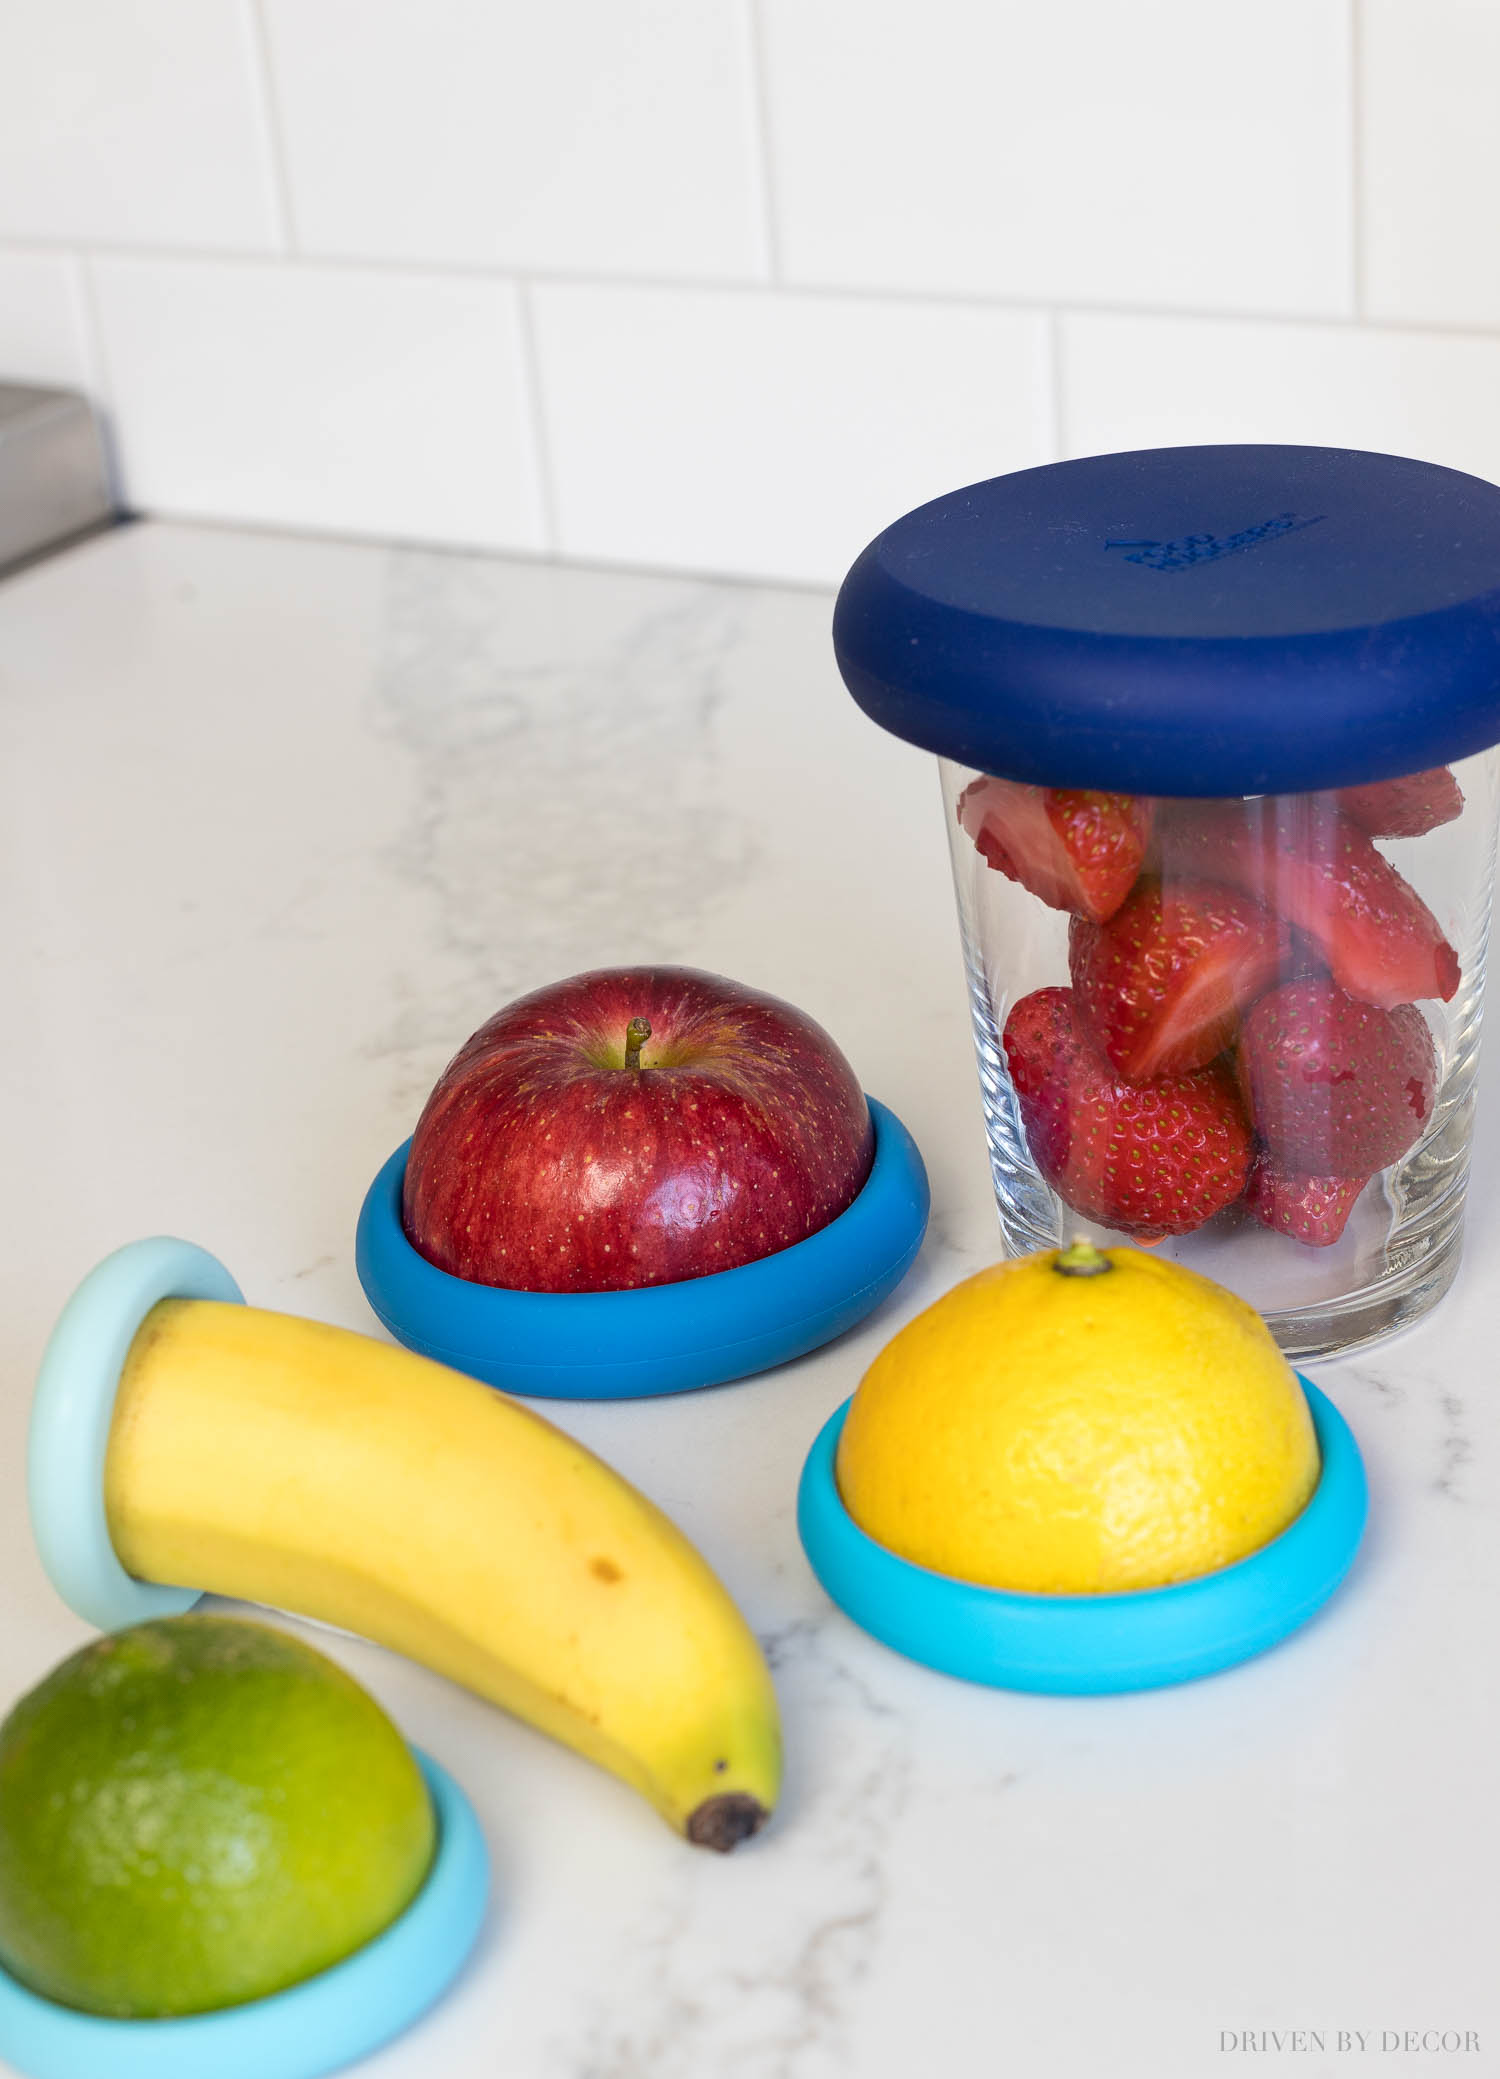 These reusable food huggers are the best for storing cut fruits and veggies!